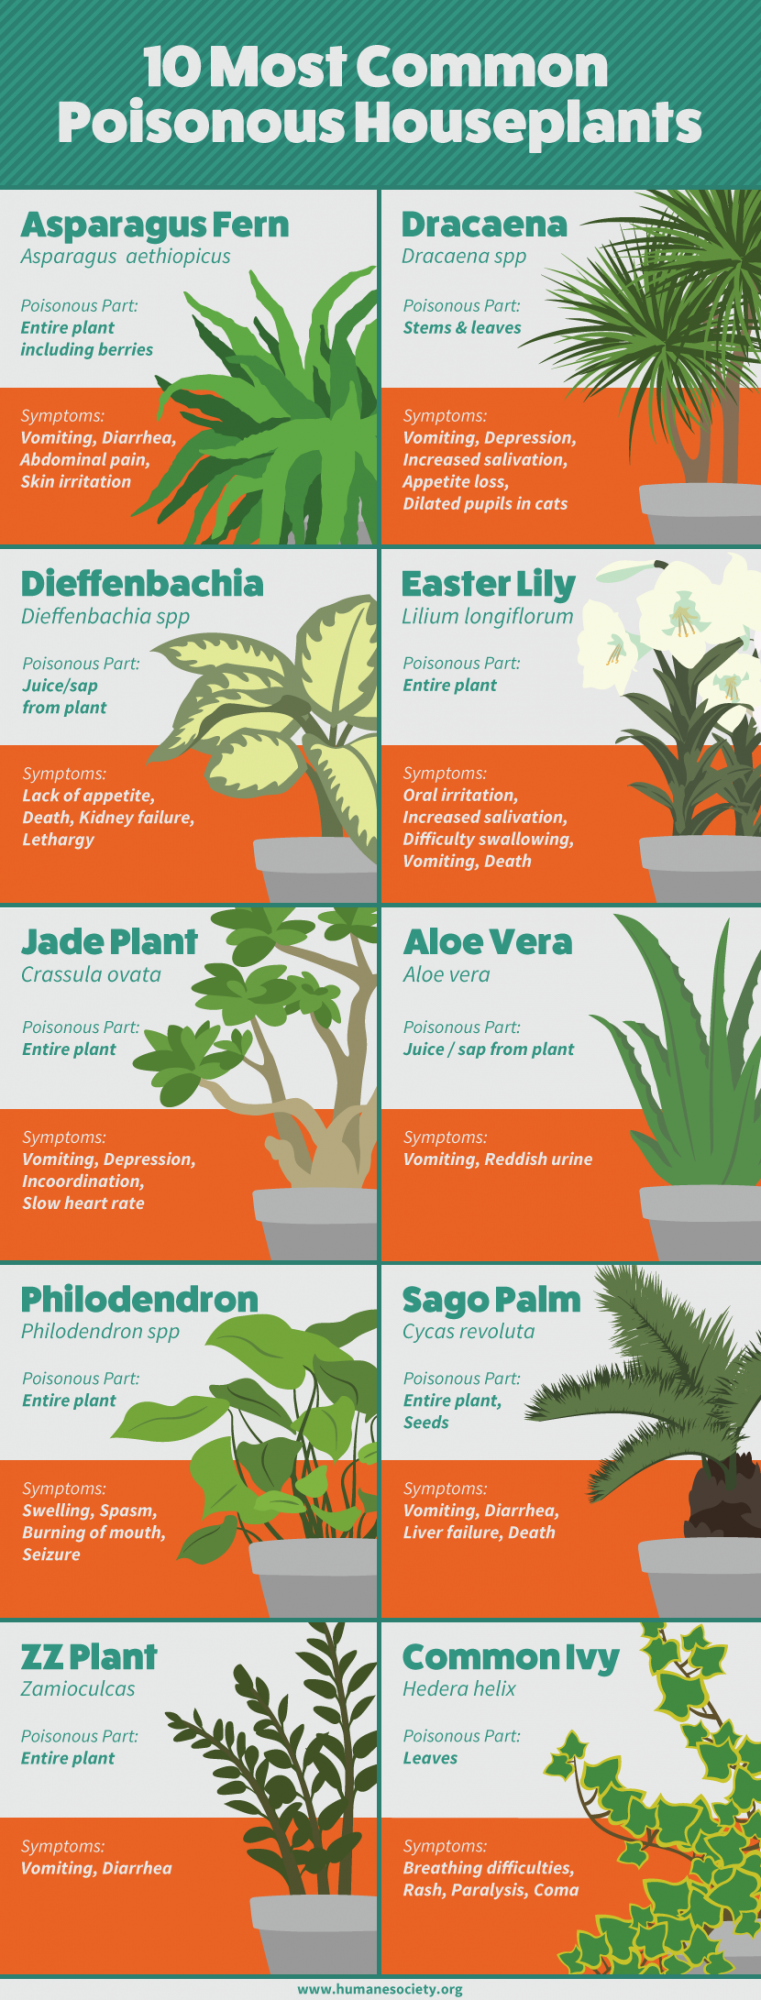 Here are the top 10 most common houseplant offenders. For a more complete  look at toxic plants (both indoors and outdoors), refer to the Humane  Society.